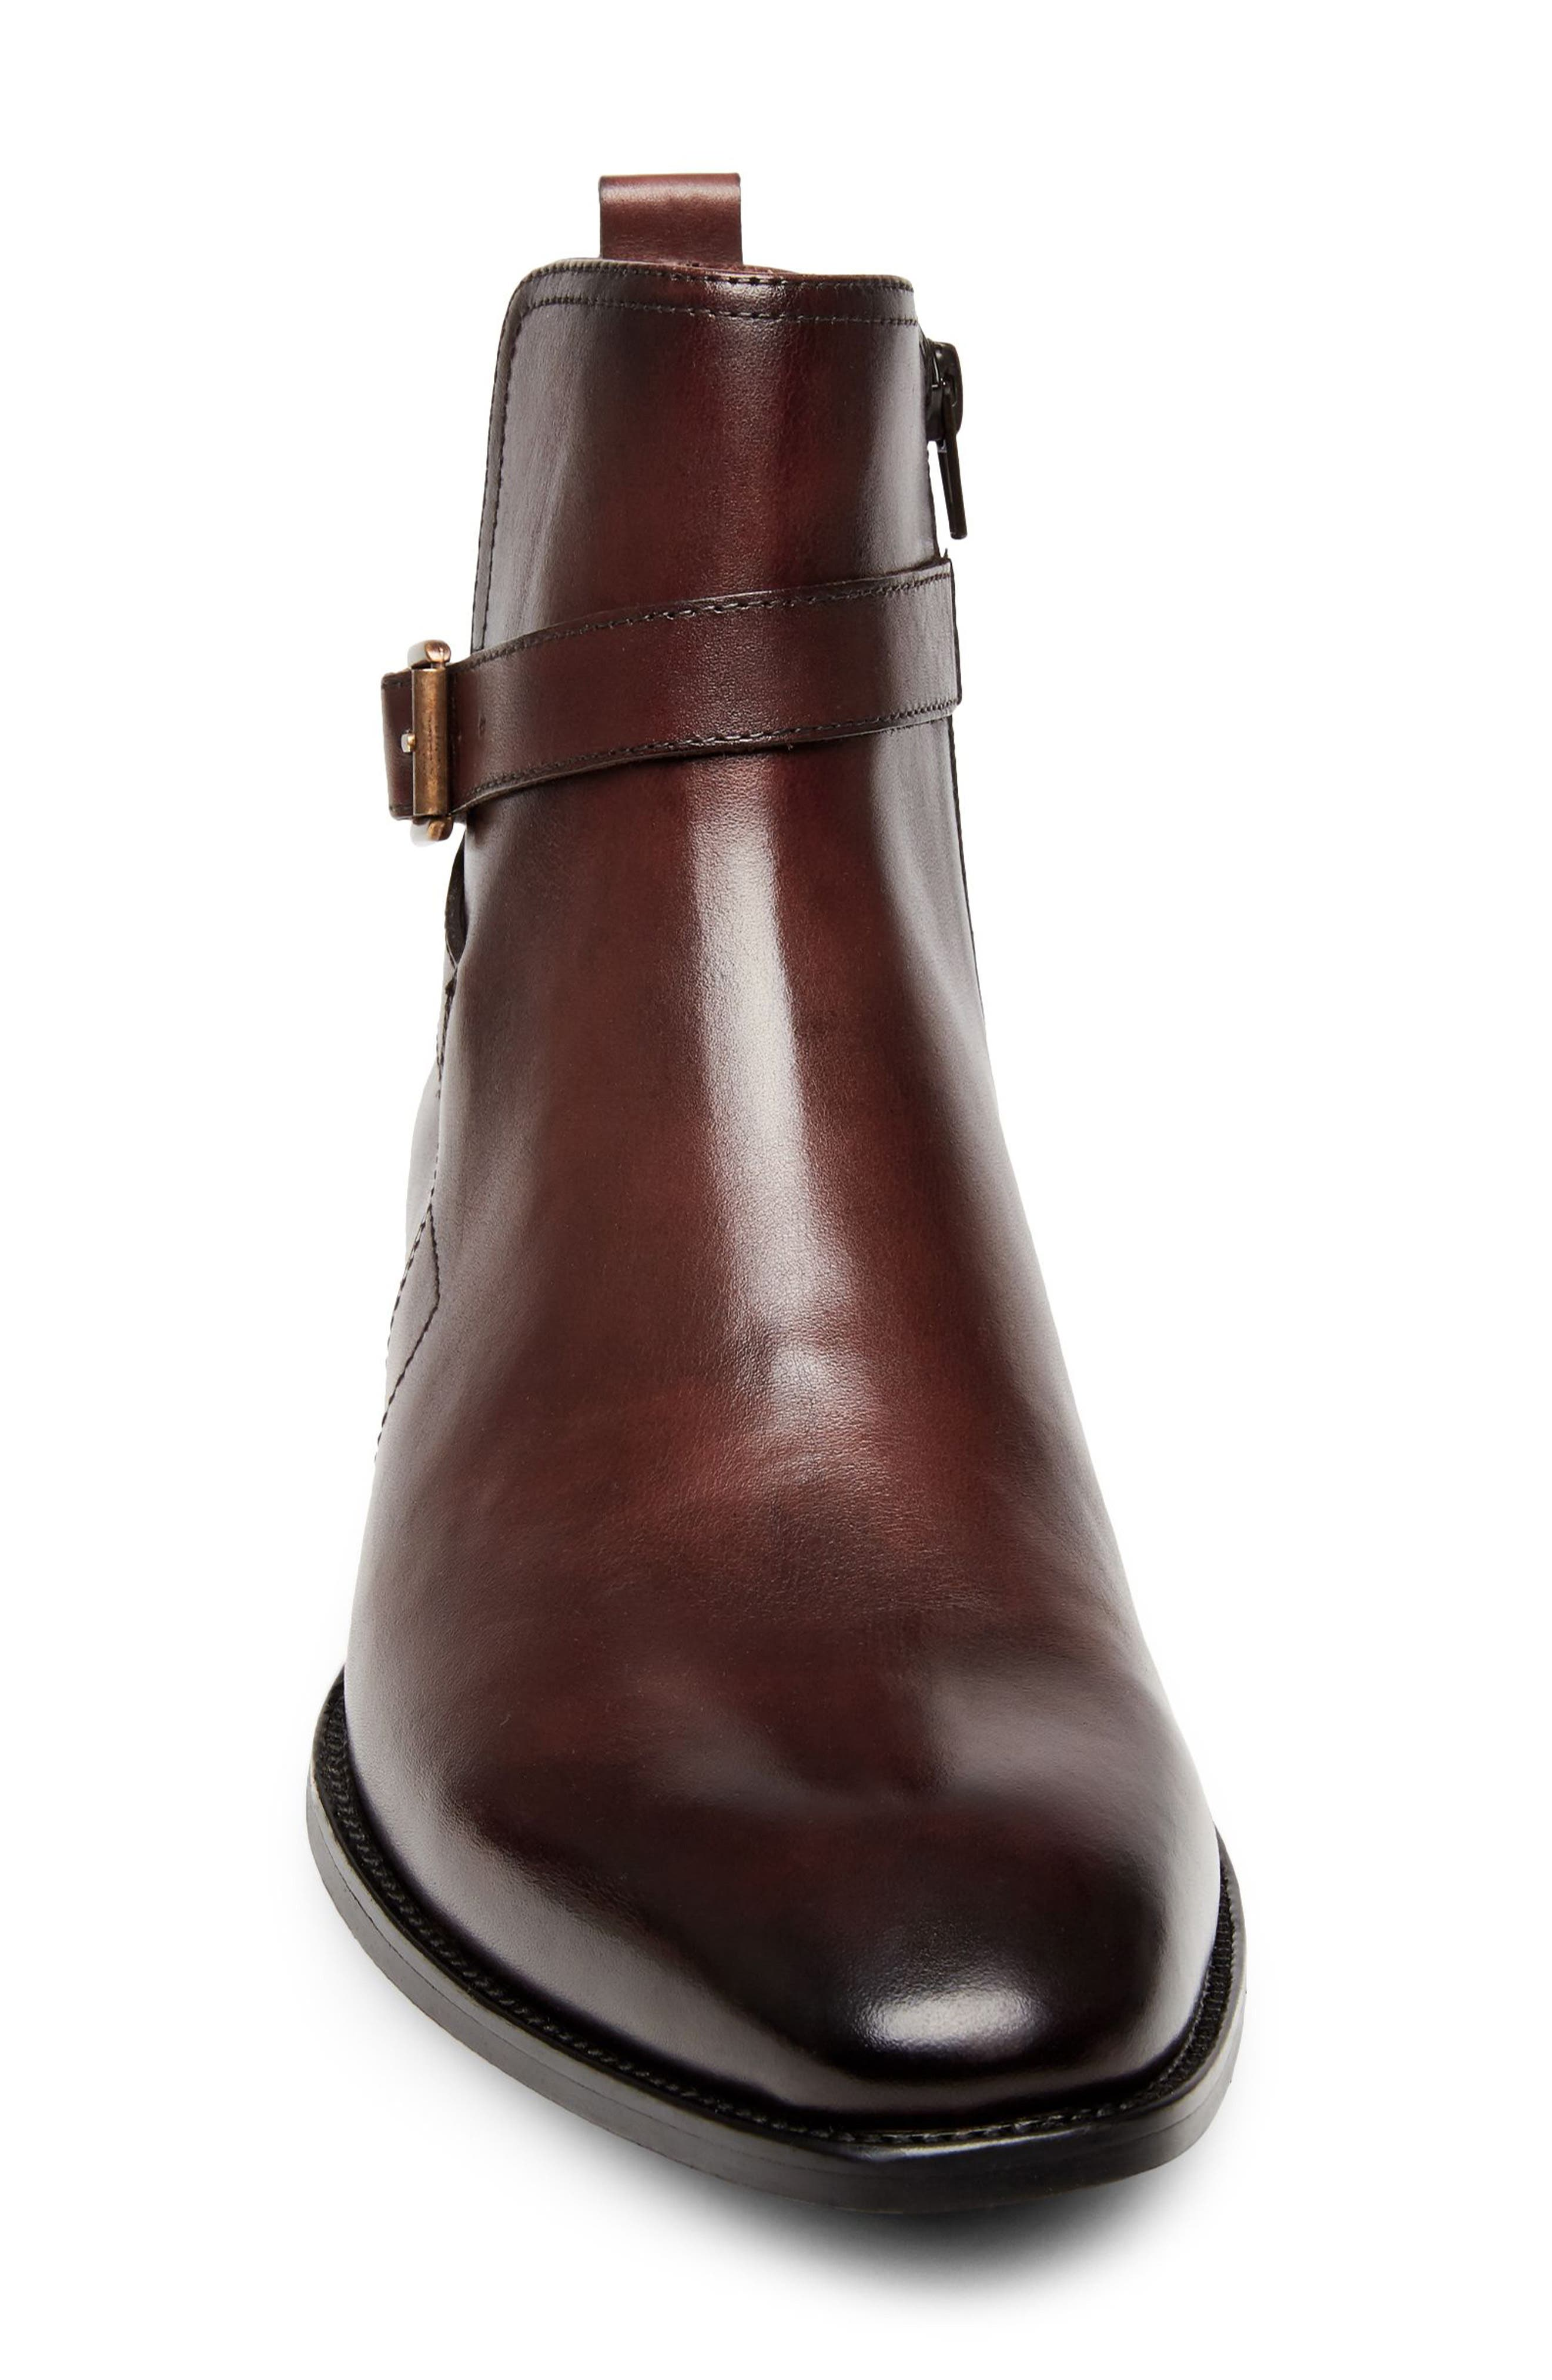 Sacha Buckle Strap Boot,                             Alternate thumbnail 4, color,                             Brown Leather